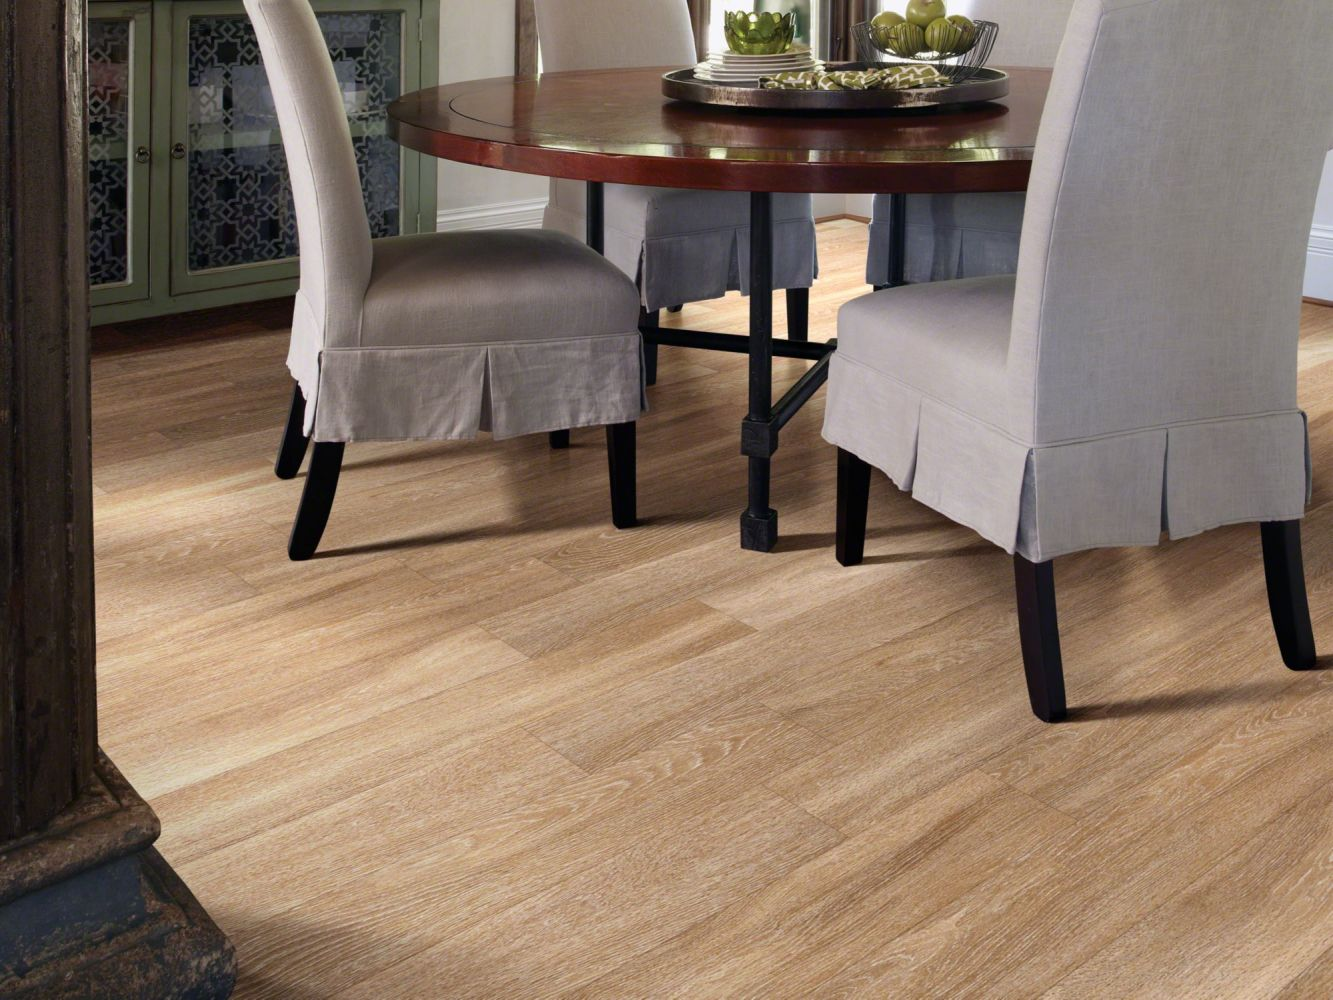 Shaw Floors Vinyl Residential World's Fair 6mil Brussels 00235_0318V